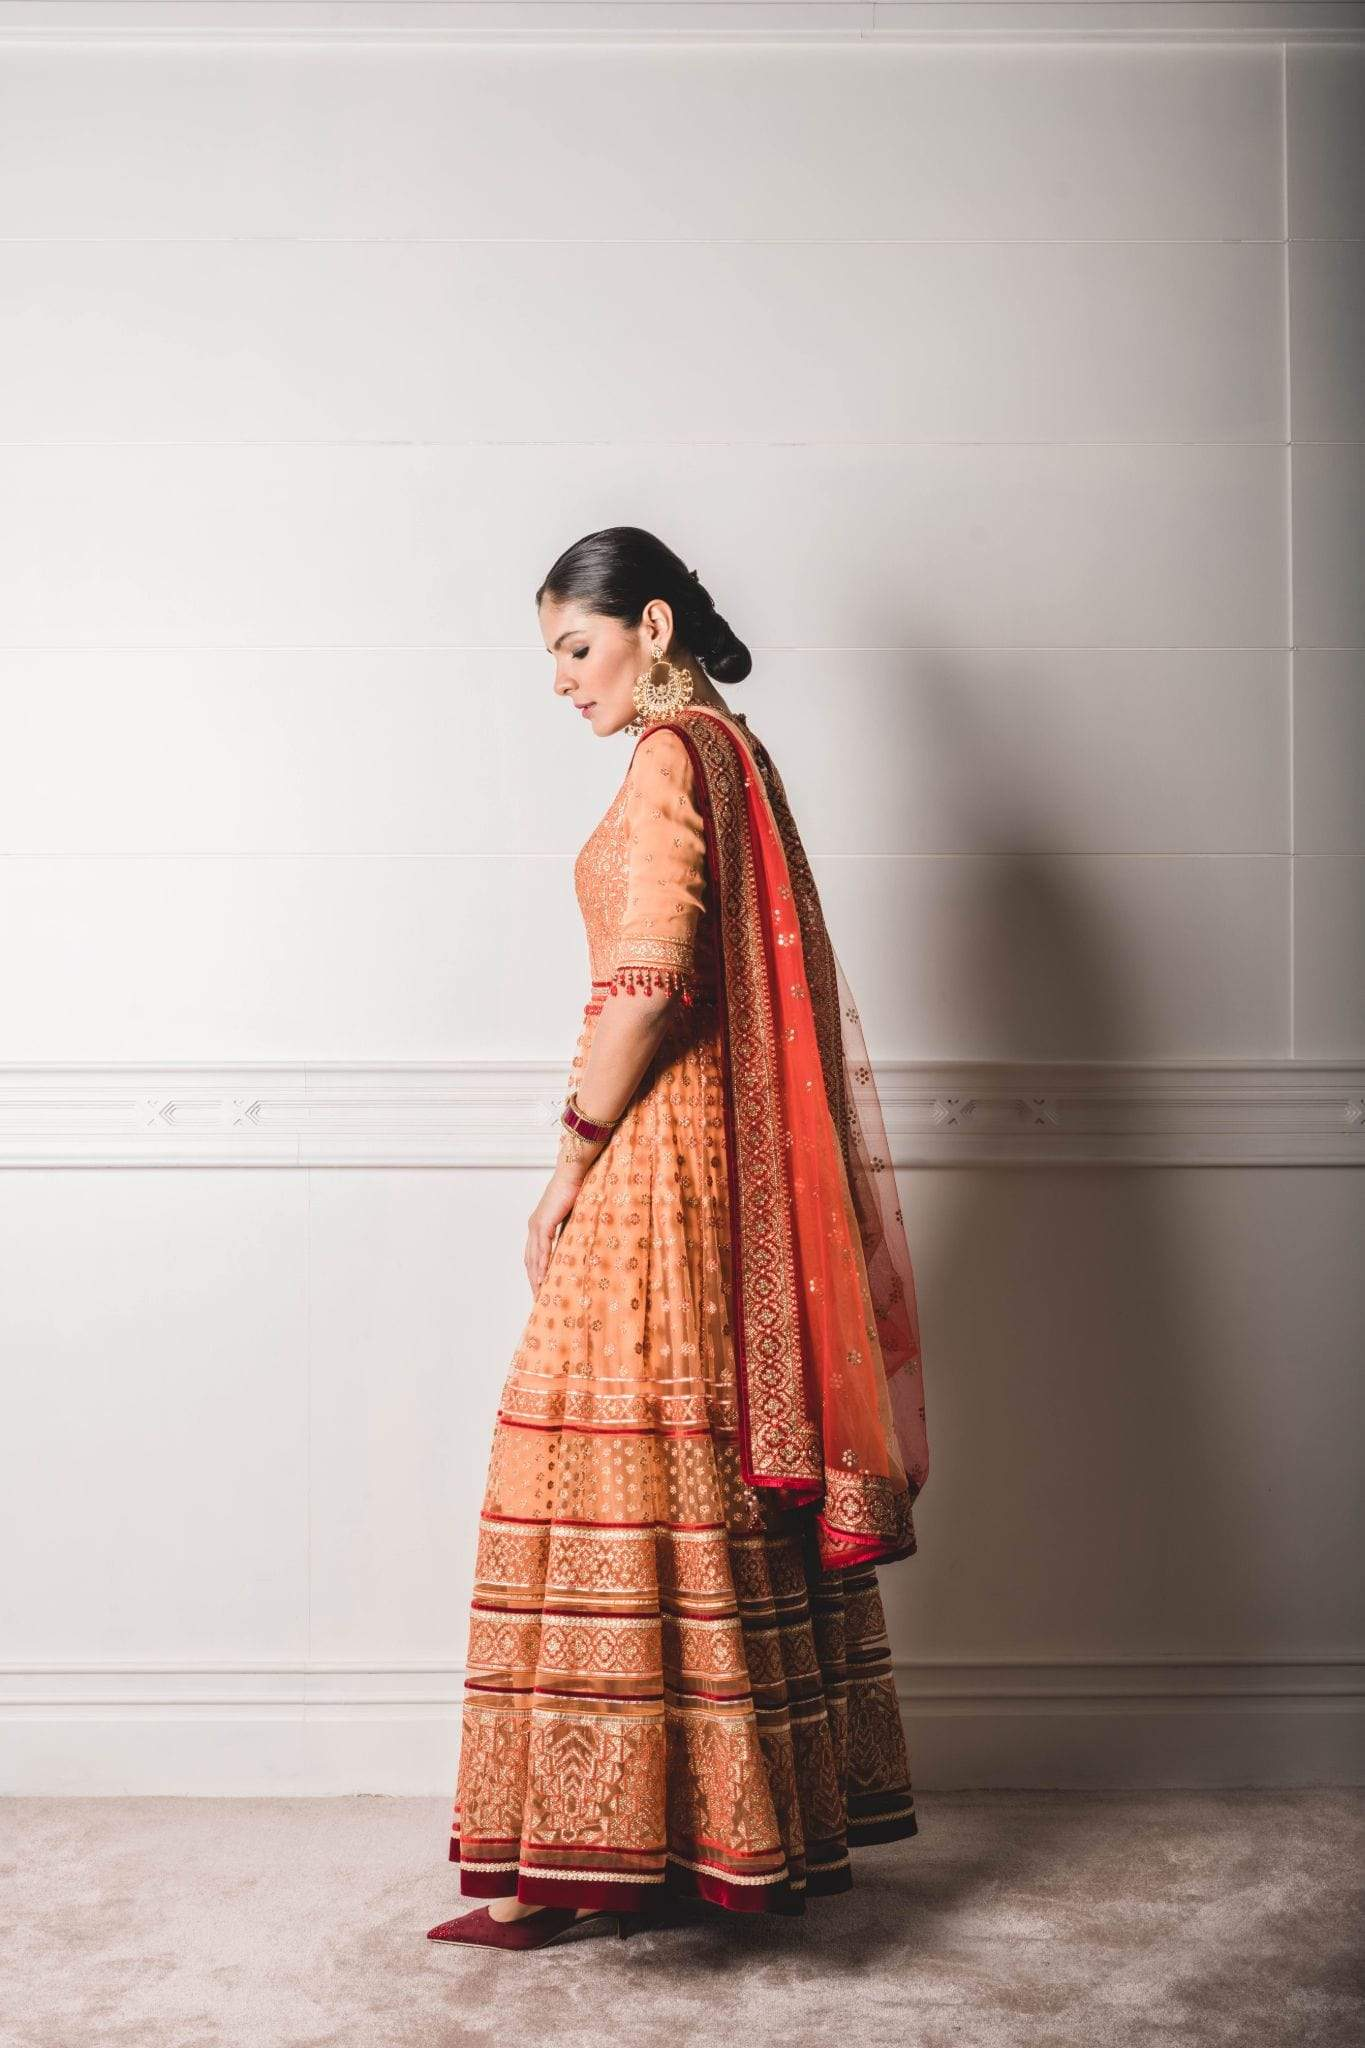 Tarun Tahiliani Anarkalis Anarkalis with gold embroidery with braids and velvet tapes